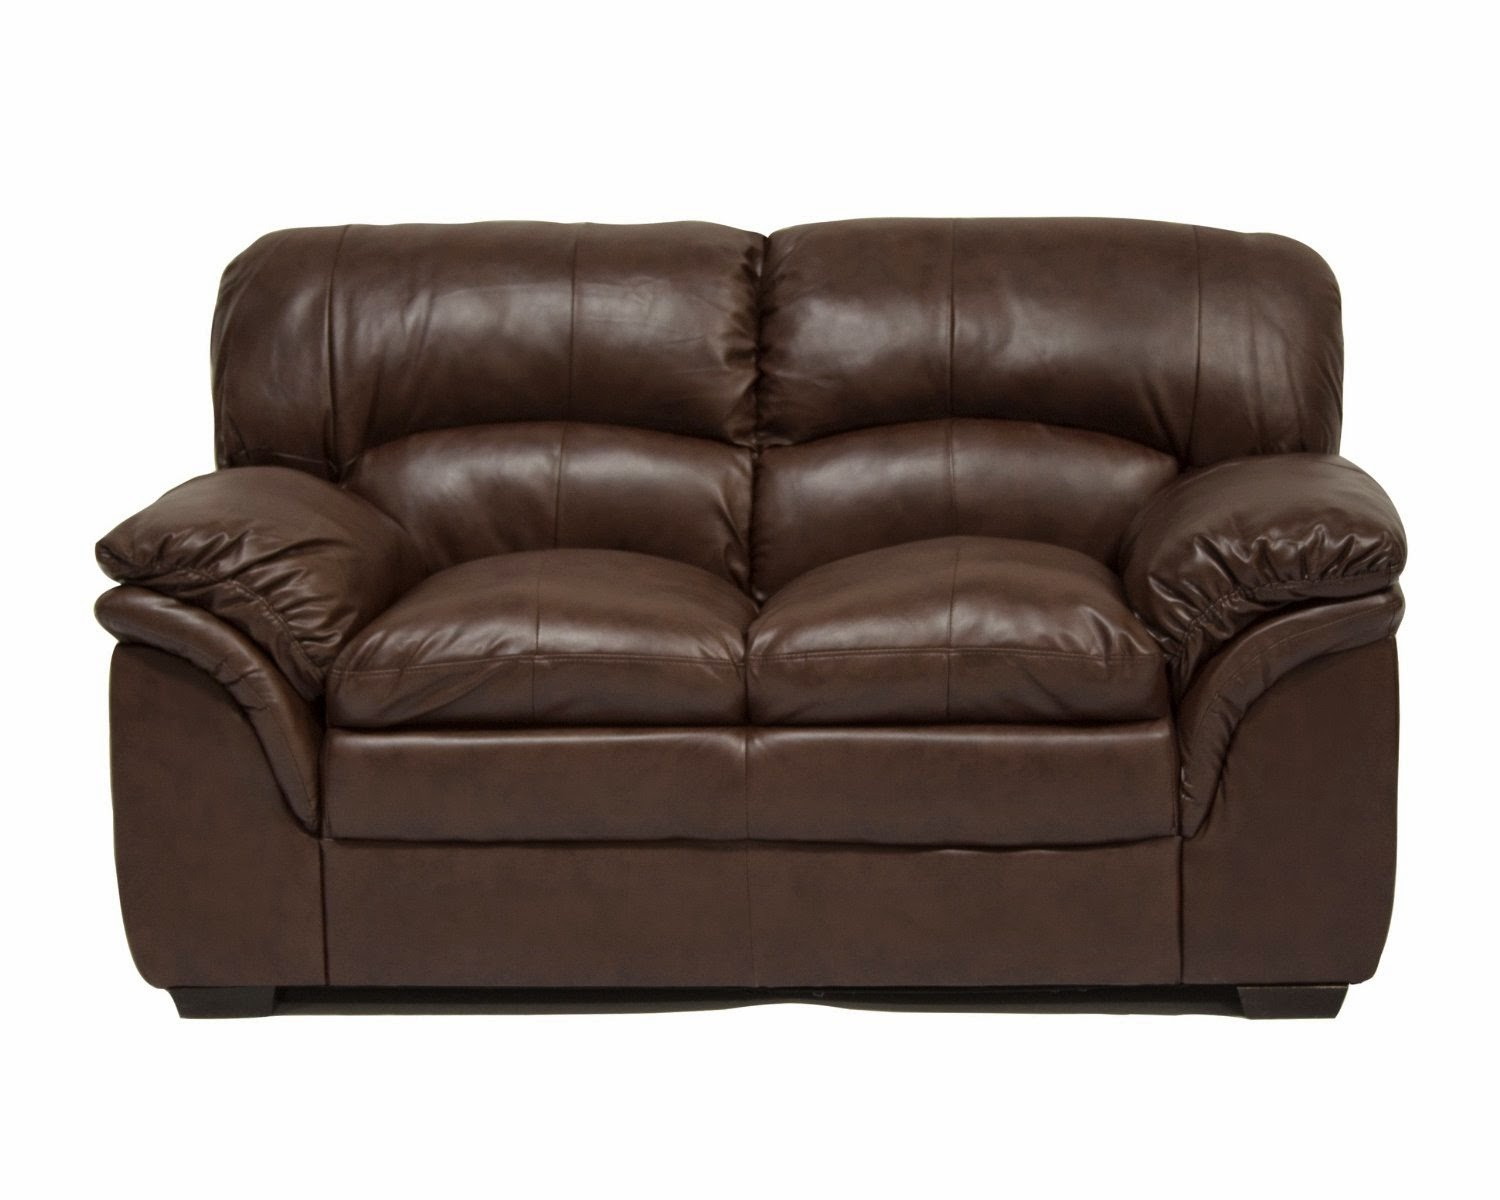 Breathtaking sectional recliner sofas pics designs dievoon for 2 seater chaise sofa for sale